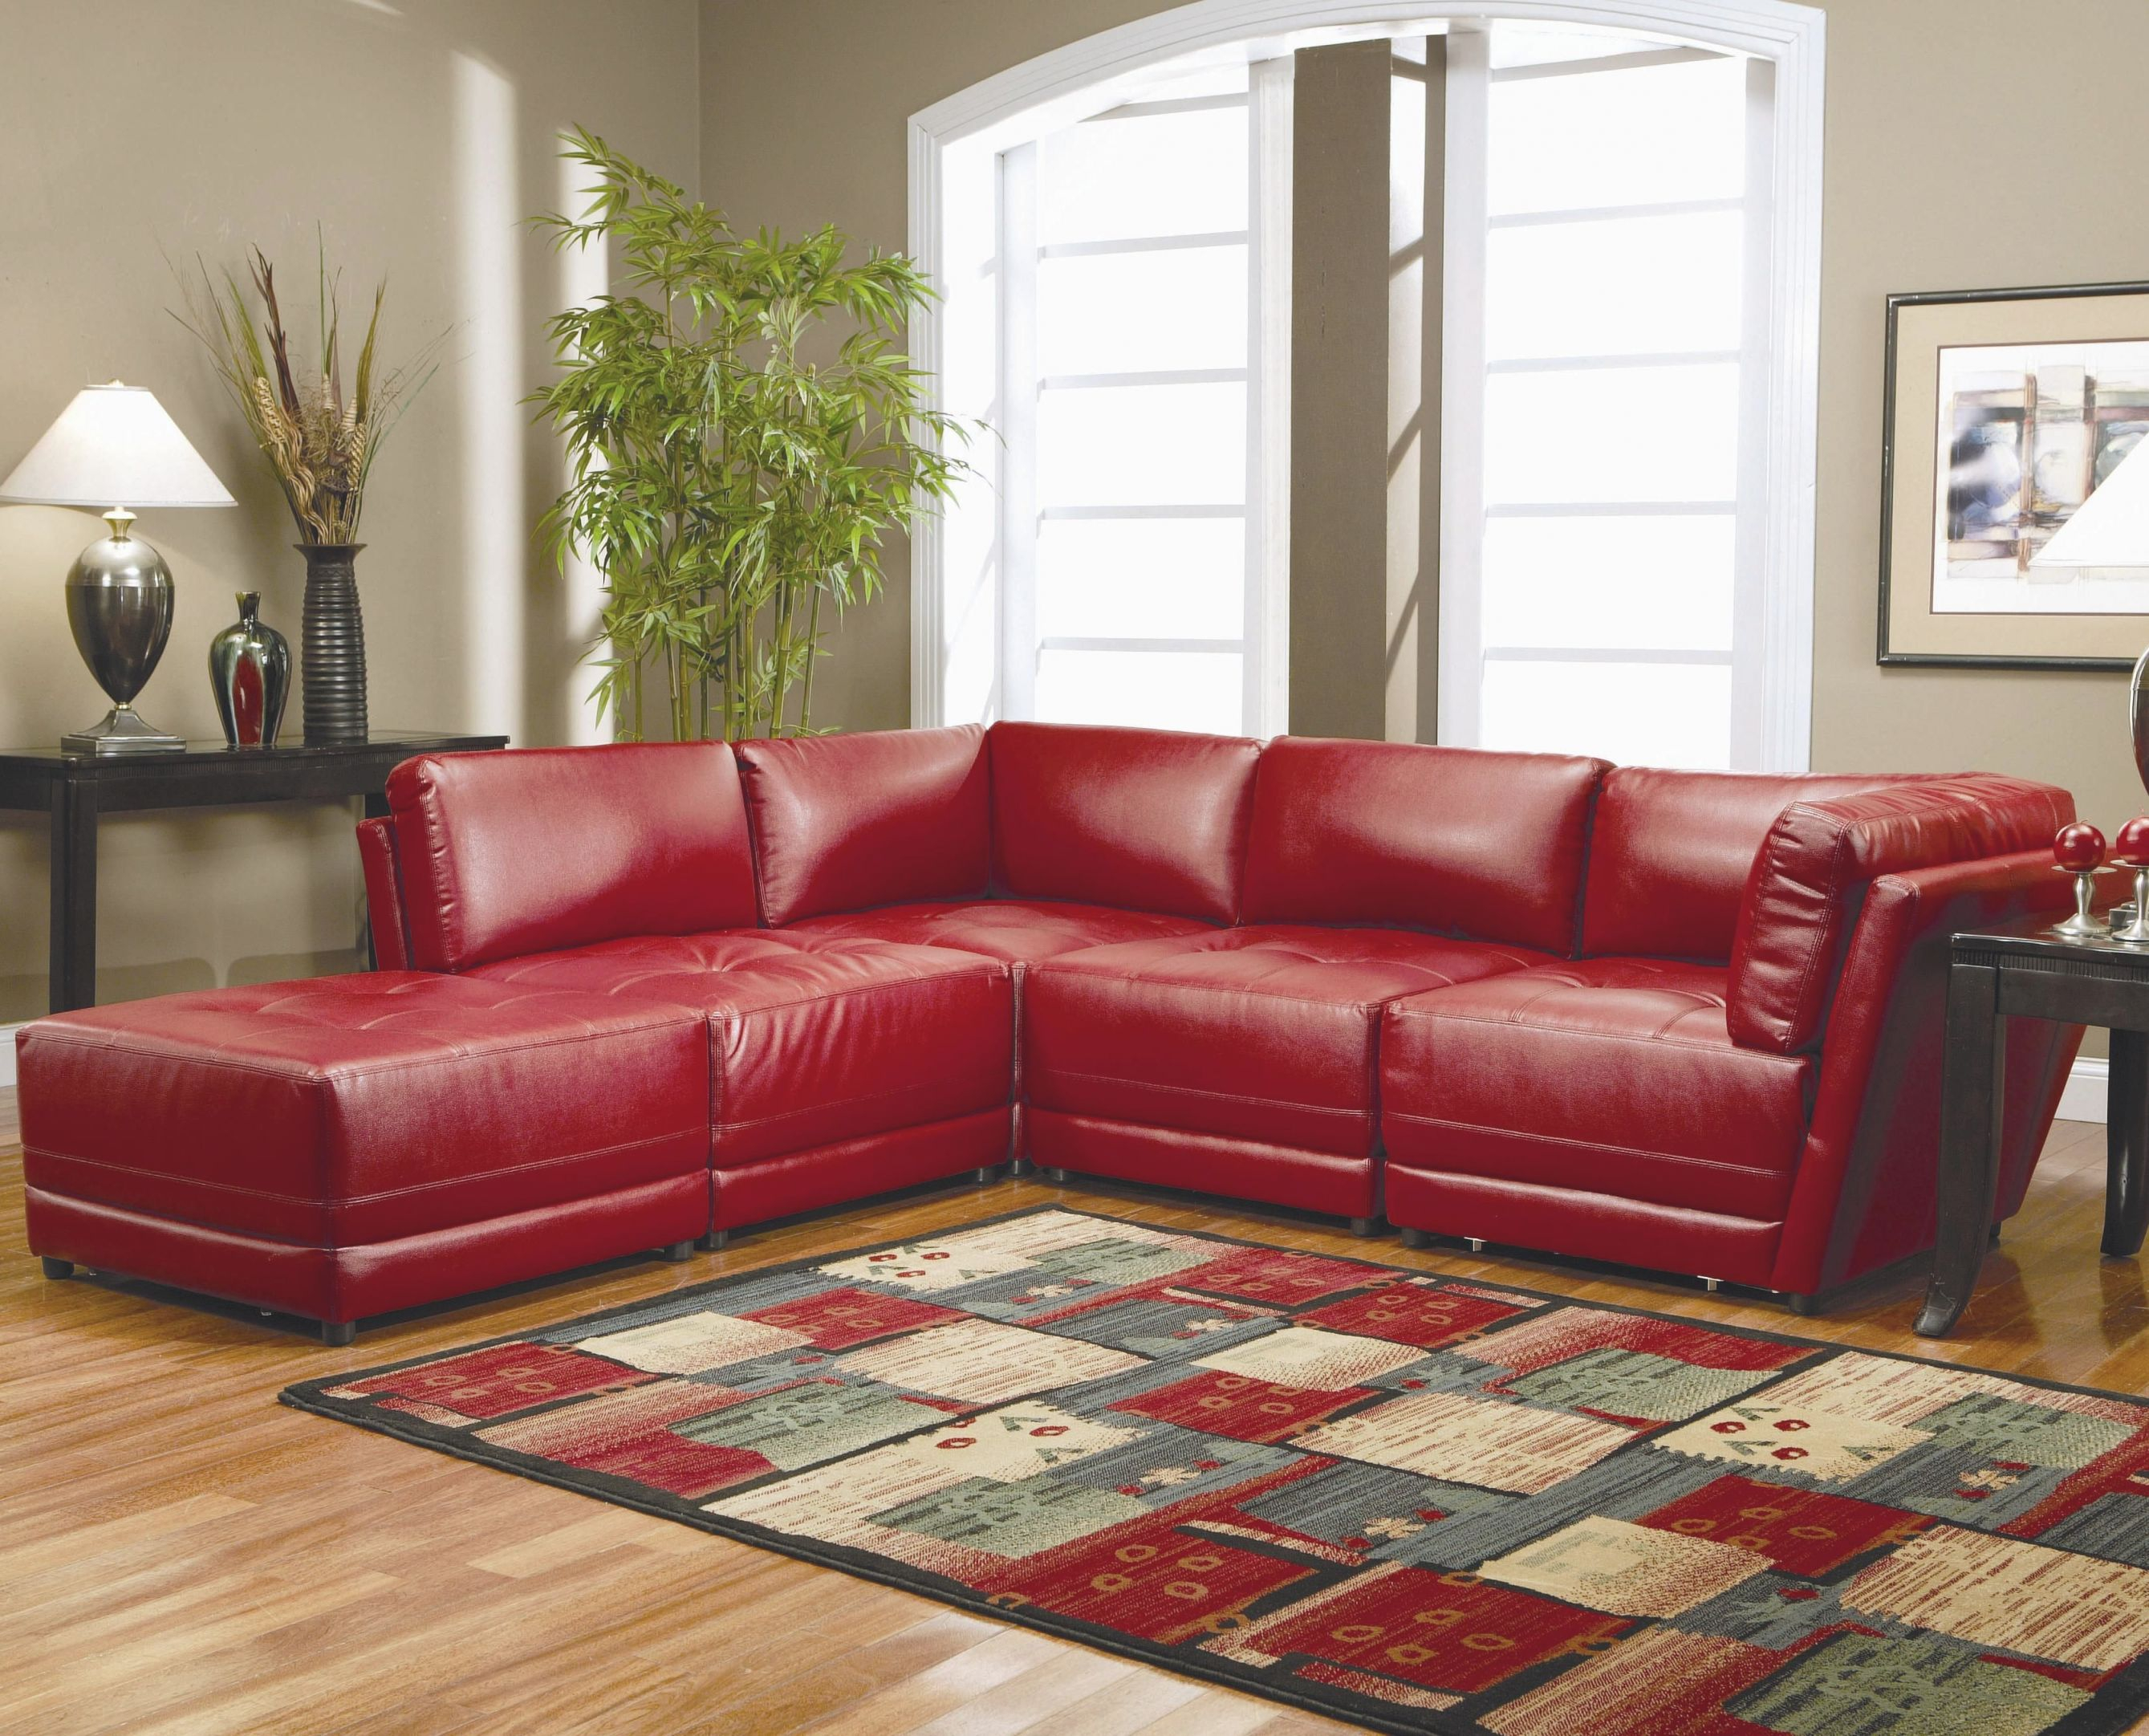 Warm Red Leather Sectional L Shaped Sofa Design Ideas For intended for Luxury Red Leather Living Room Furniture